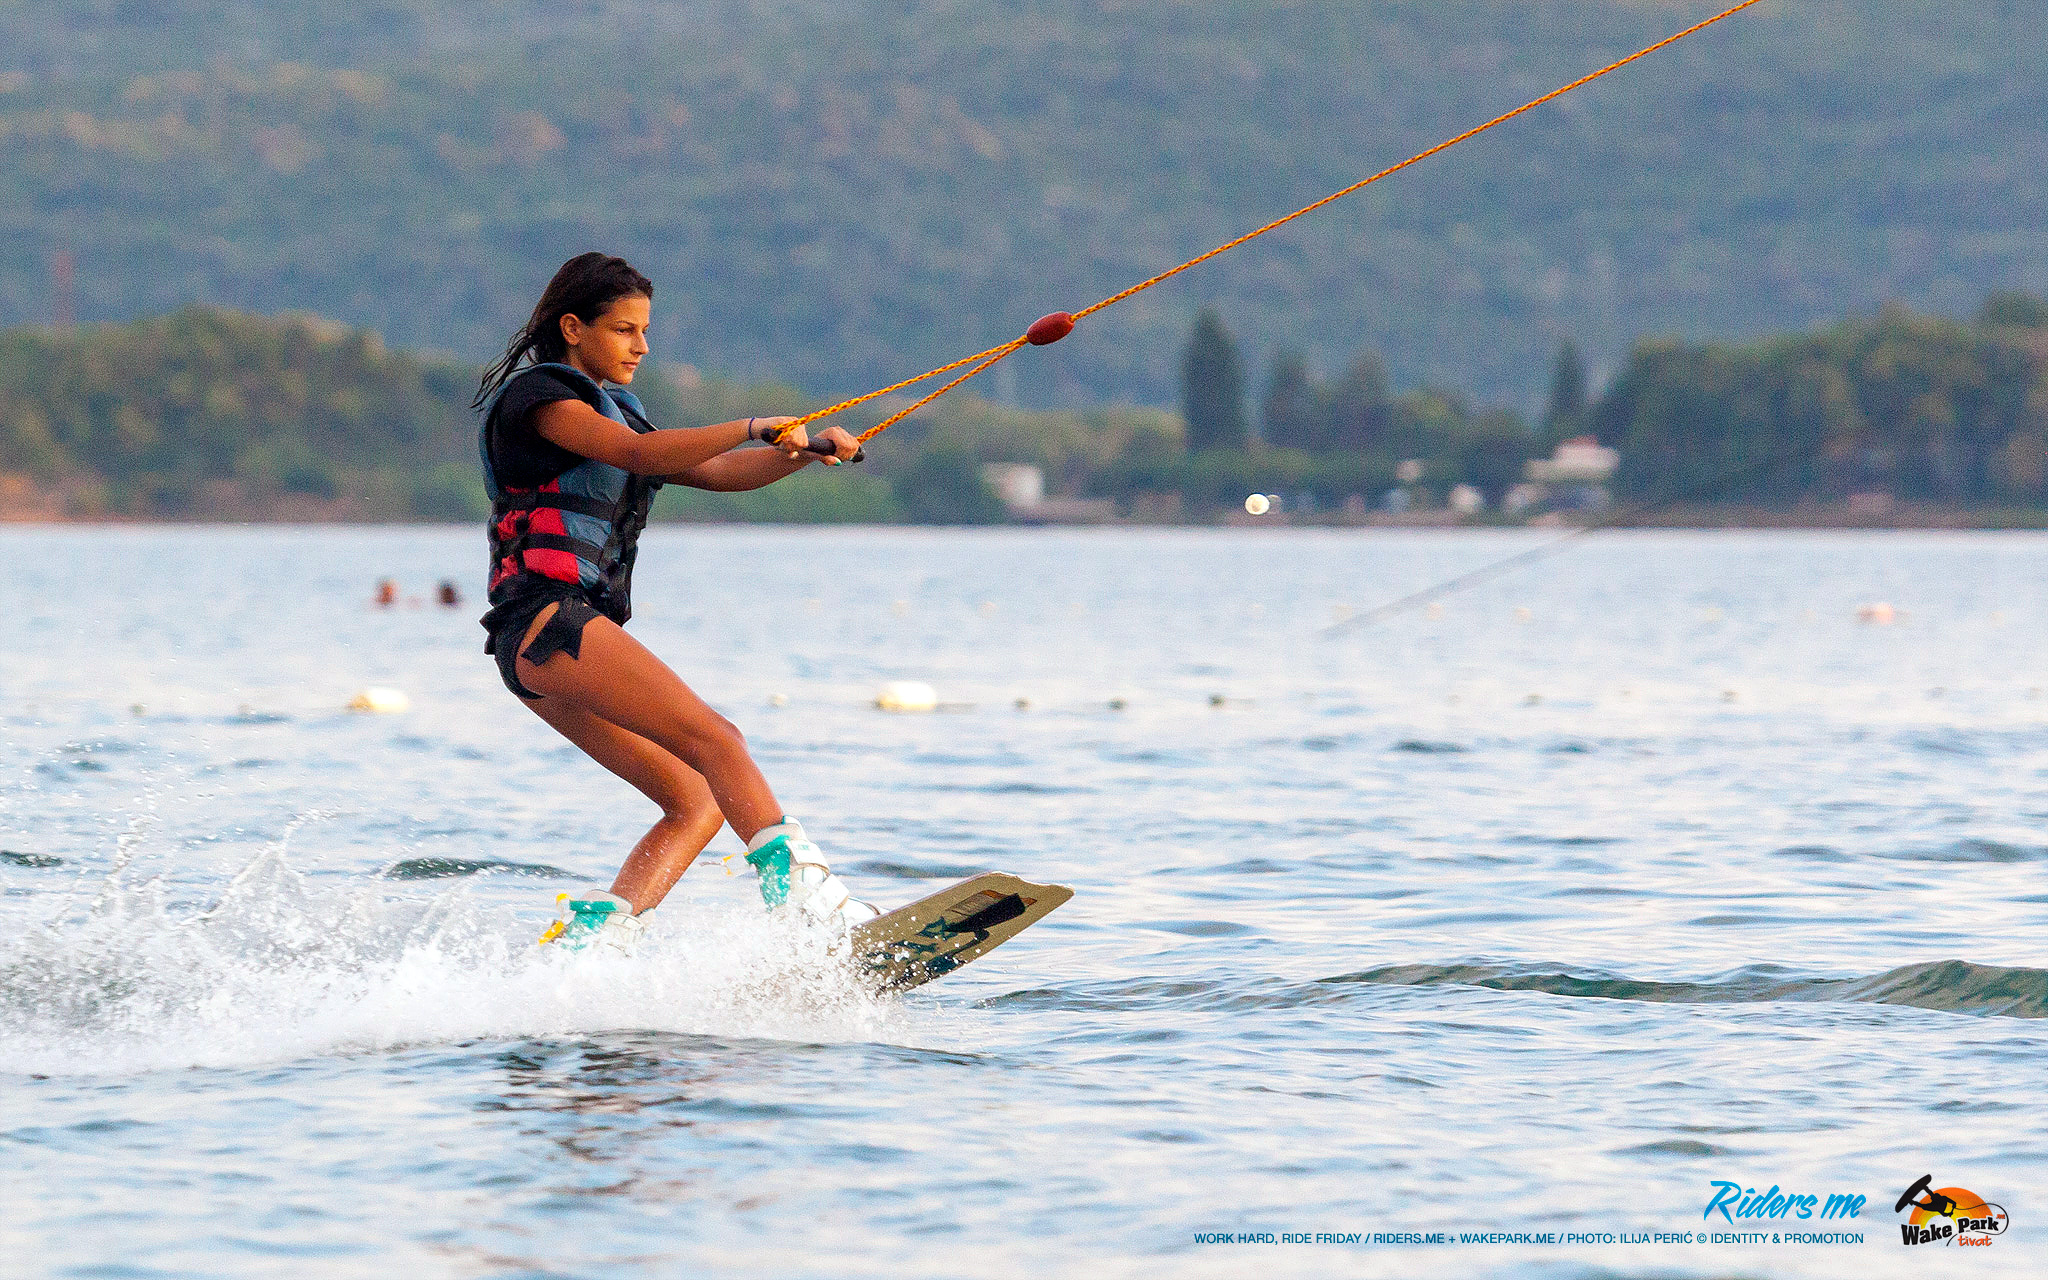 Ines Zmijanović - work hard, ride friday - wakepark.me © riders.me